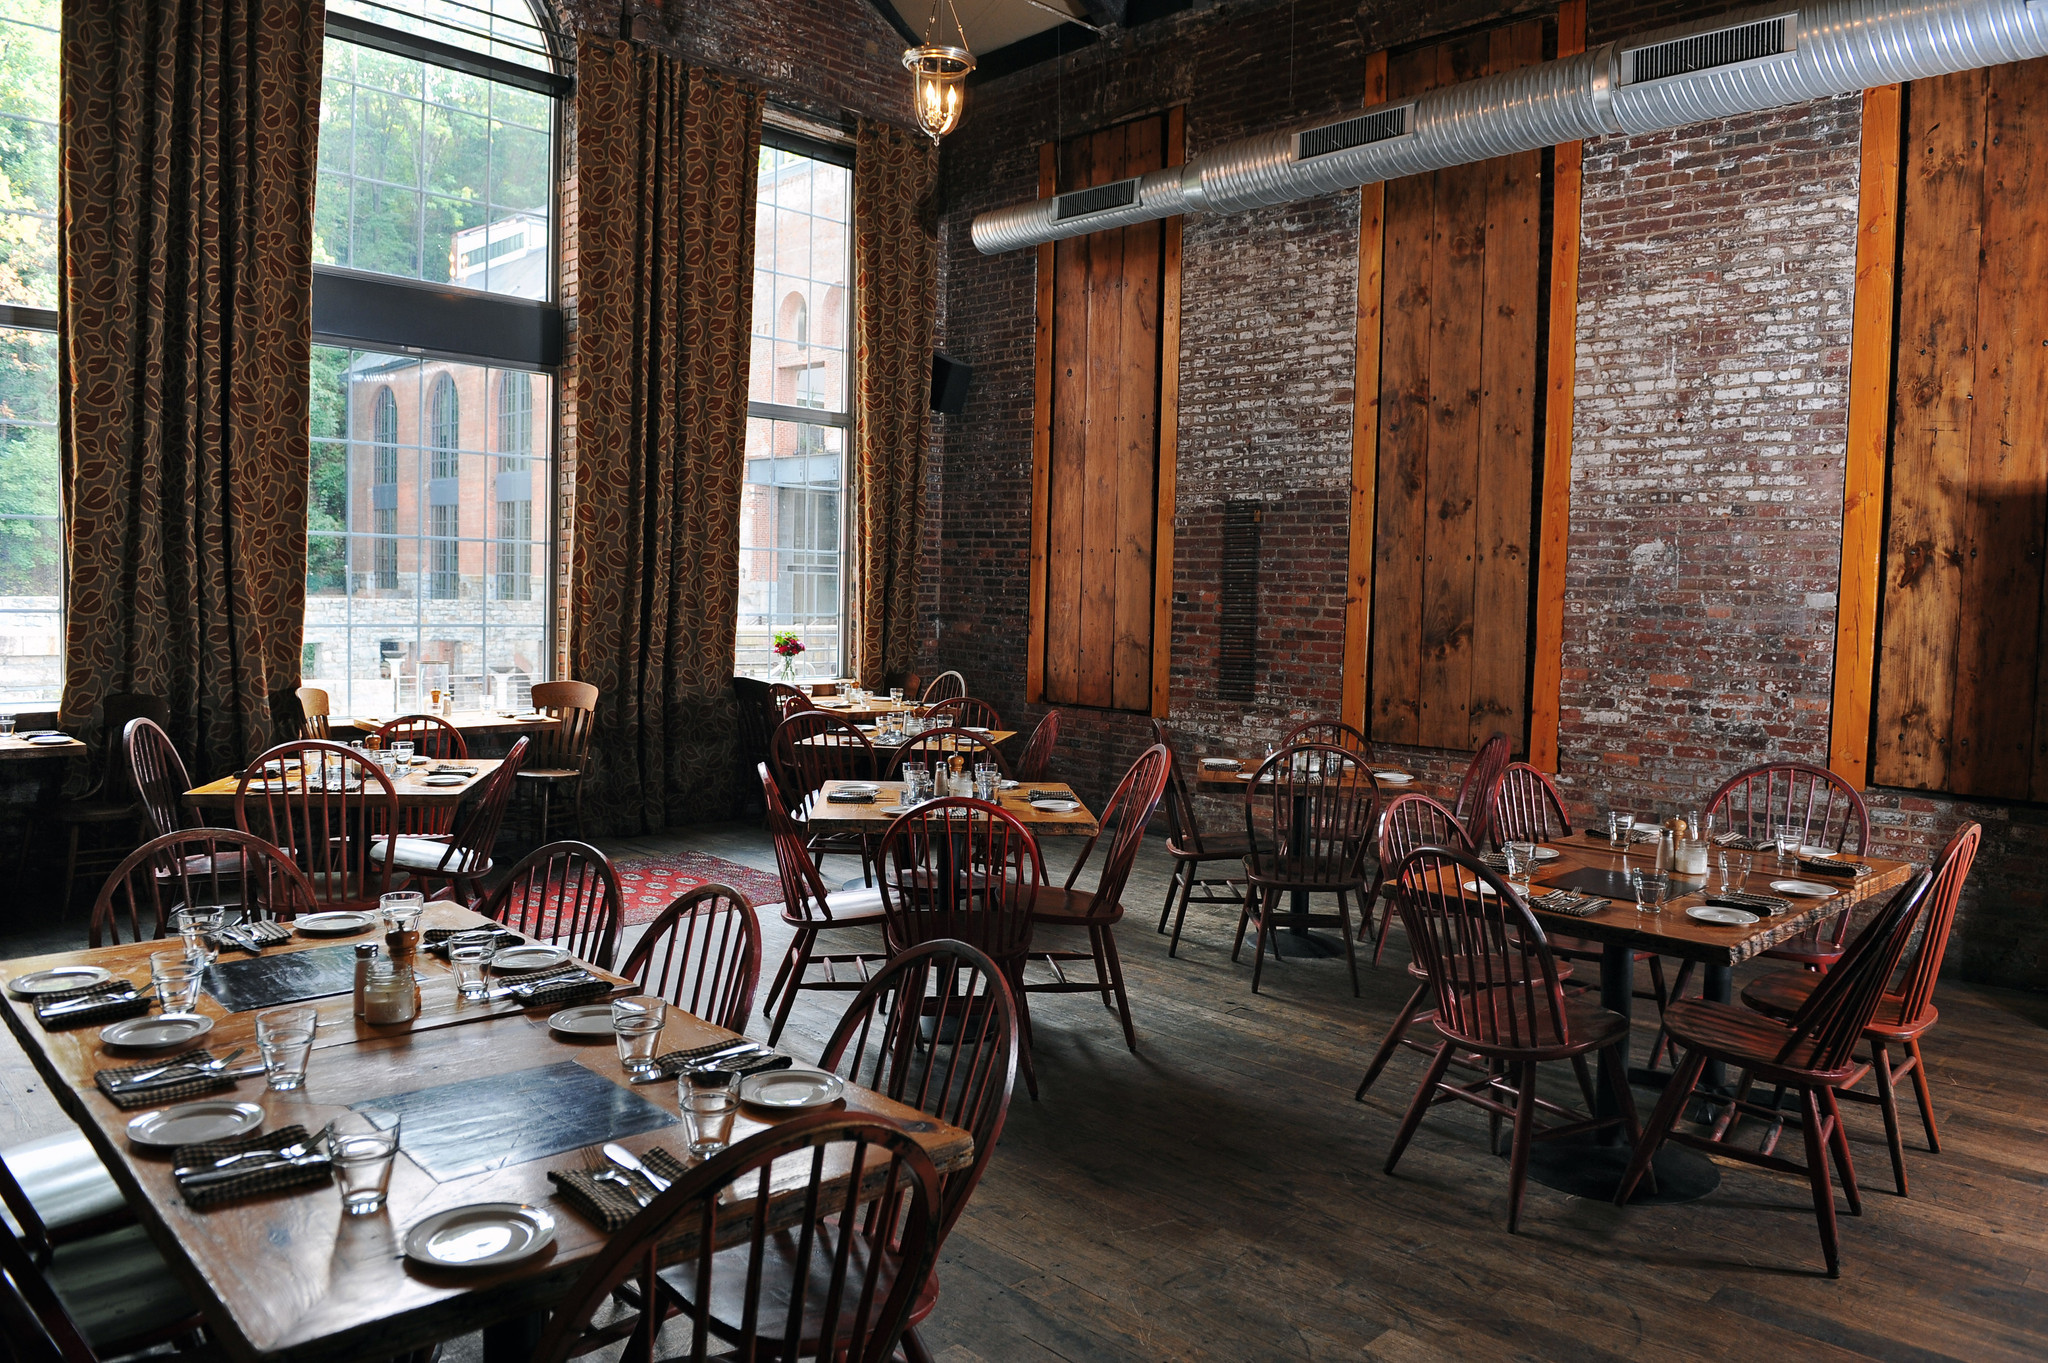 Woodberry Kitchen makes National Eaters list of 38 essential restaurants  Baltimore Sun